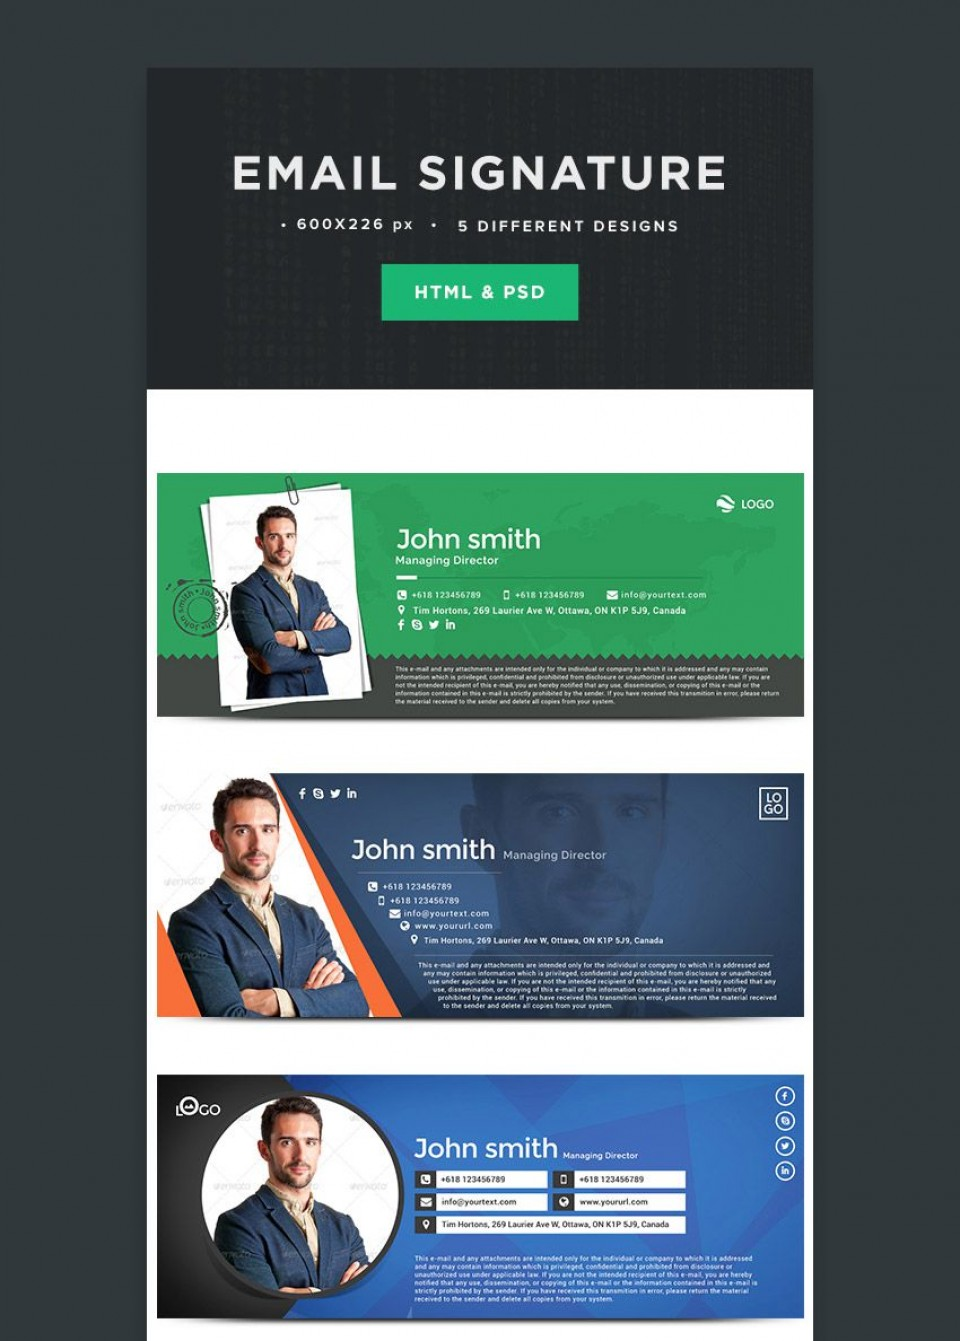 004 Awful Professional Email Signature Template Picture  Busines Download960